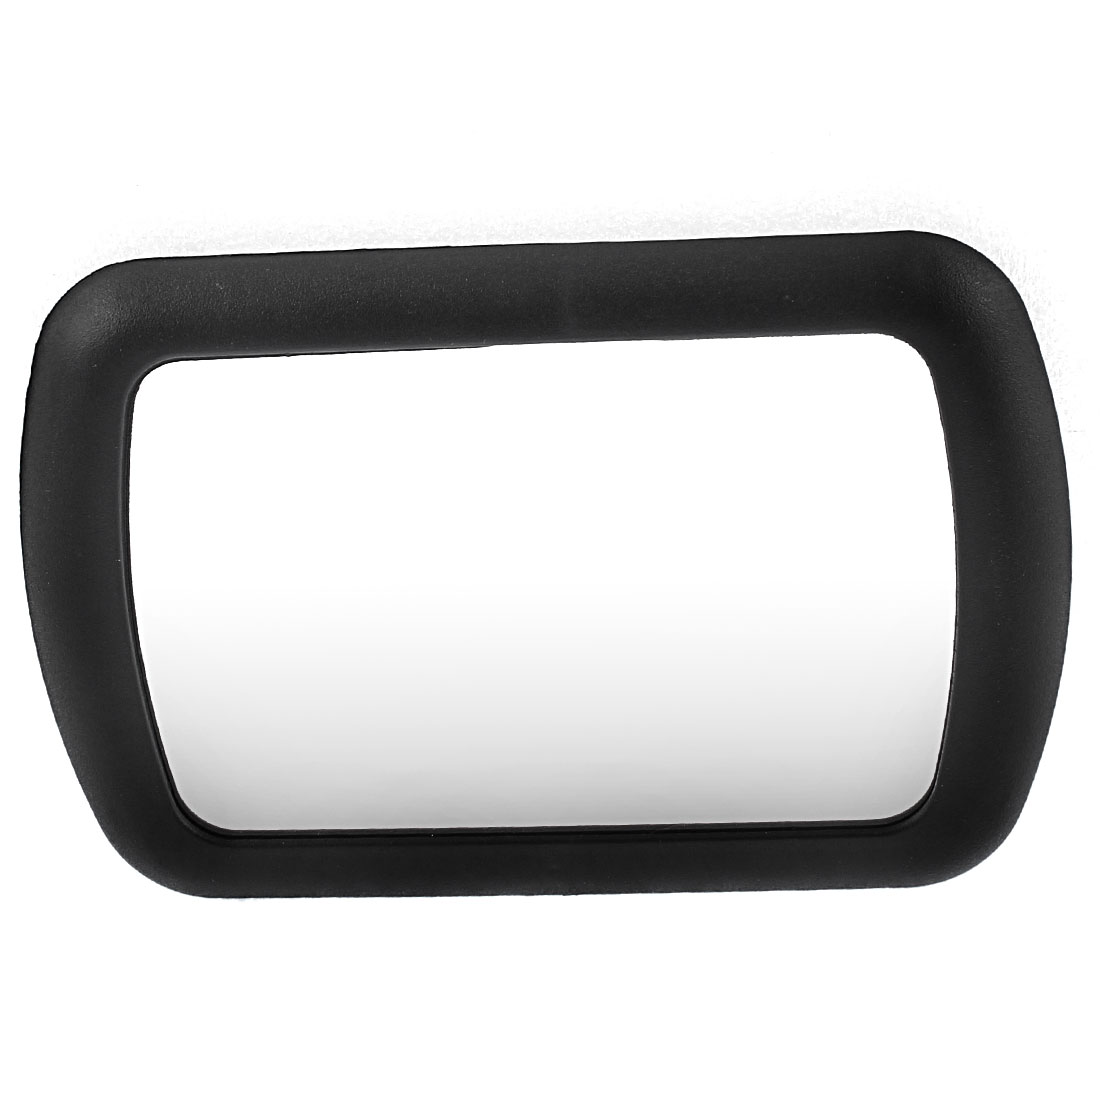 Universal Car Vehicle Wide Angle Blind Spot Blindspot Mirror Black